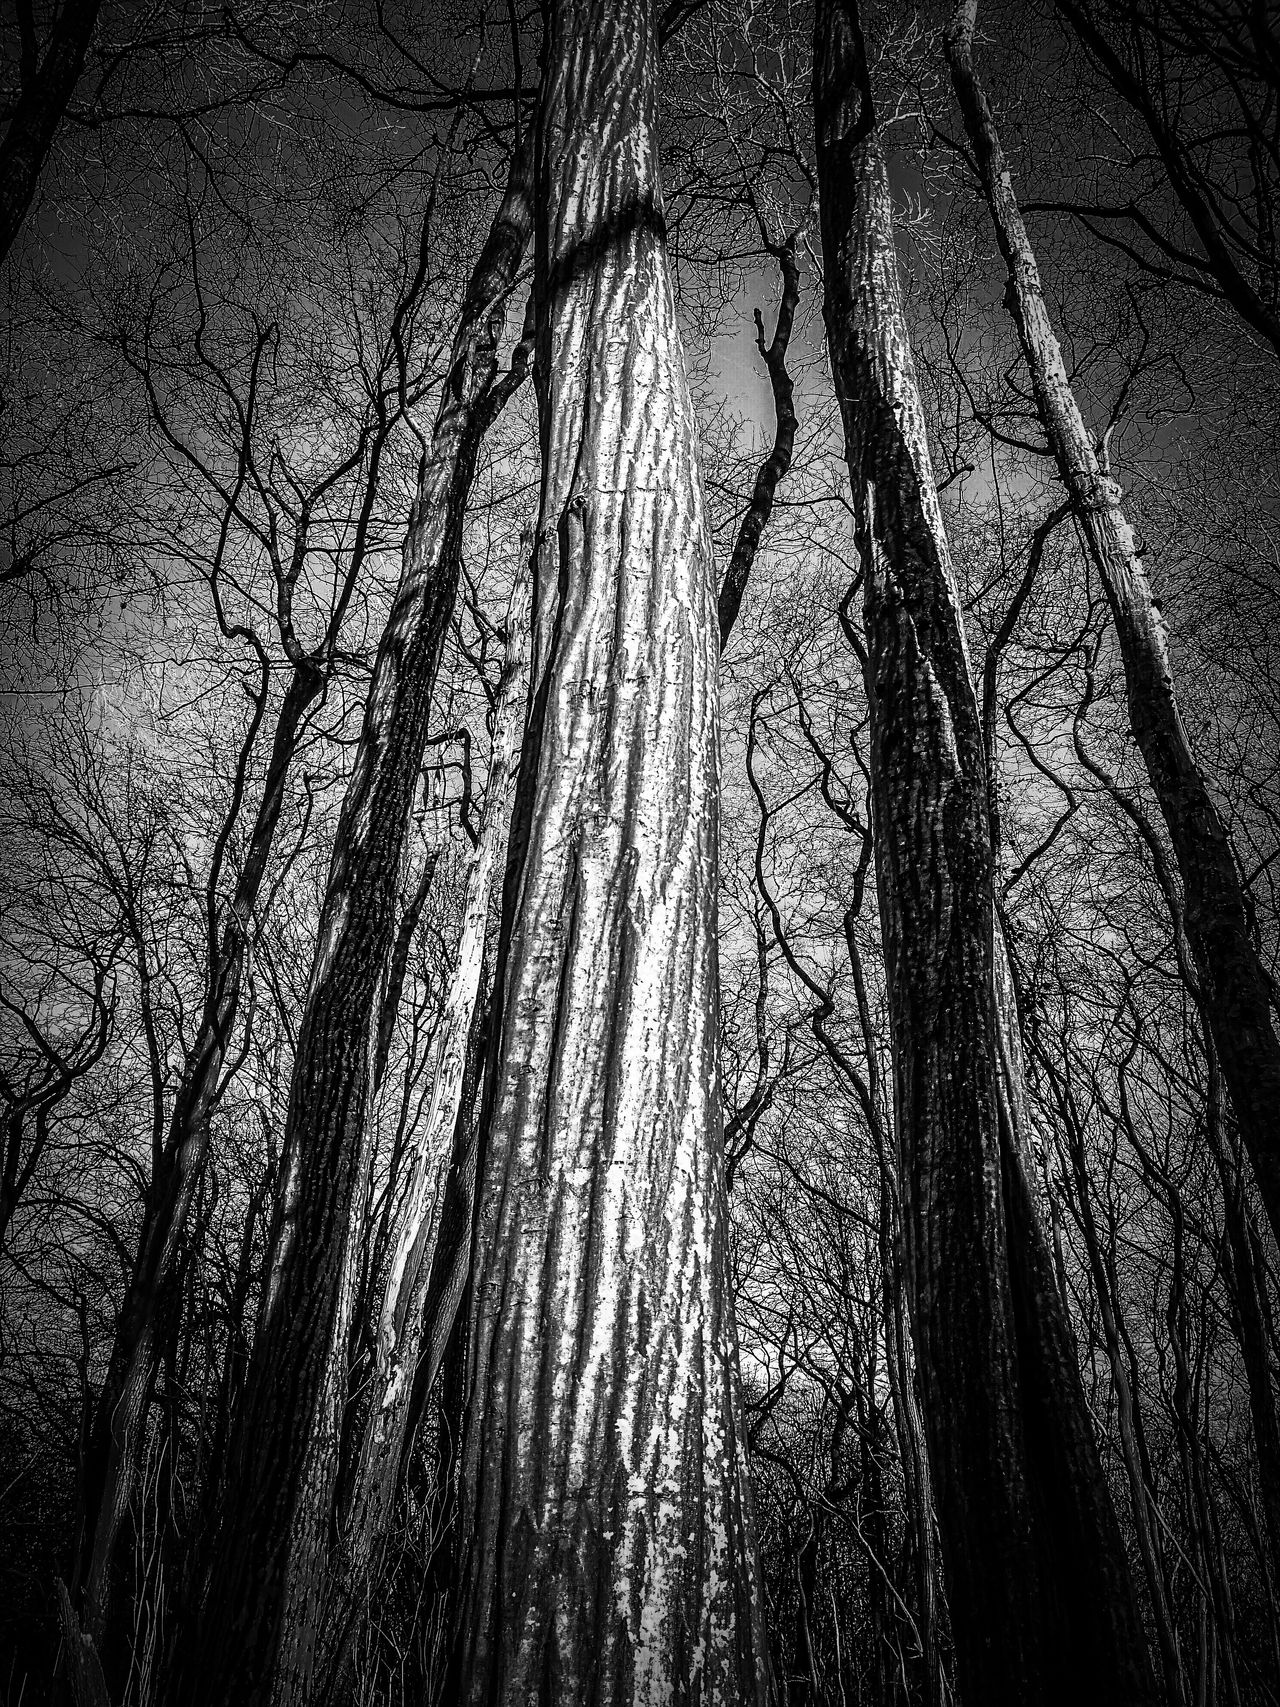 Tree Low Angle View No People Nature Growth Sky Backgrounds Beauty In Nature Outdoors Day Low Angle View Tree Woodlands Plant Hornbeam Bark Texture Tree Trunk Black And White Photography Full Frame Close-up